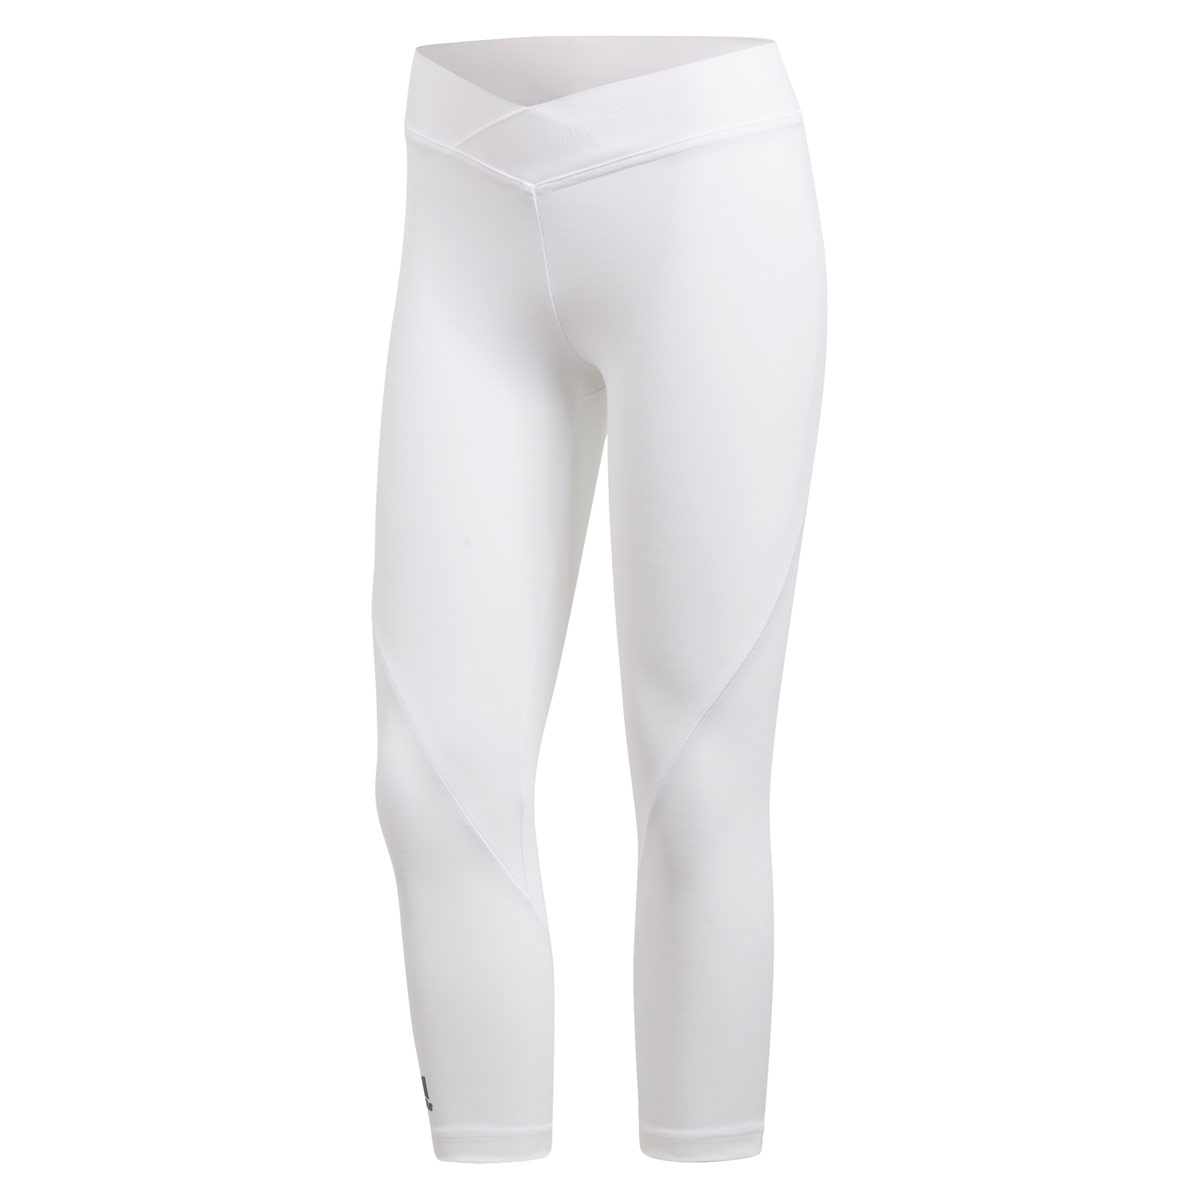 91cfc52aca6a3 adidas Alphaskin Tech 3/4-tight - Fitness trousers for Women - White | 21RUN